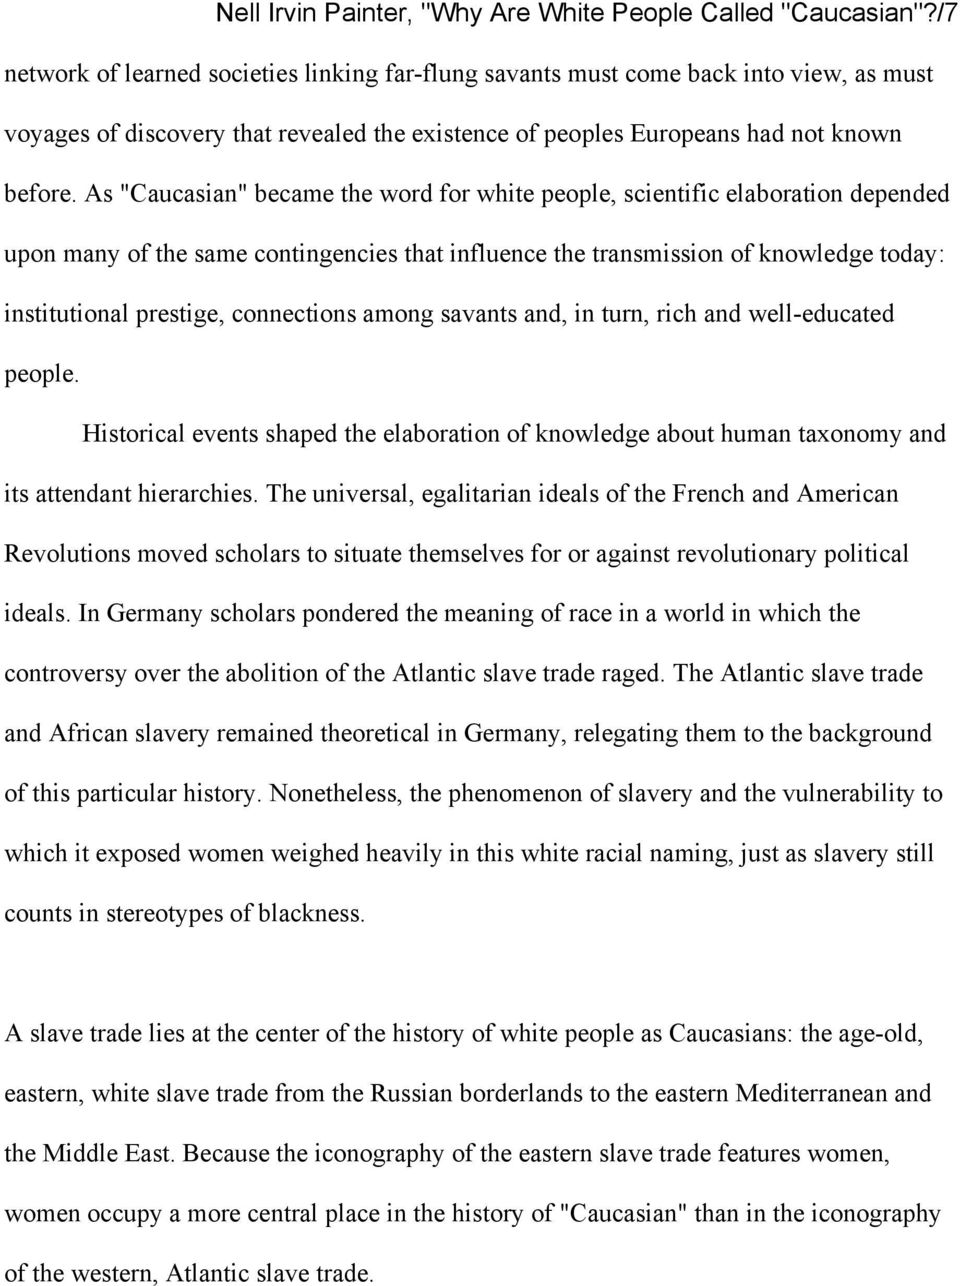 "As ""Caucasian"" became the word for white people, scientific elaboration depended upon many of the same contingencies that influence the transmission of knowledge today: institutional prestige,"